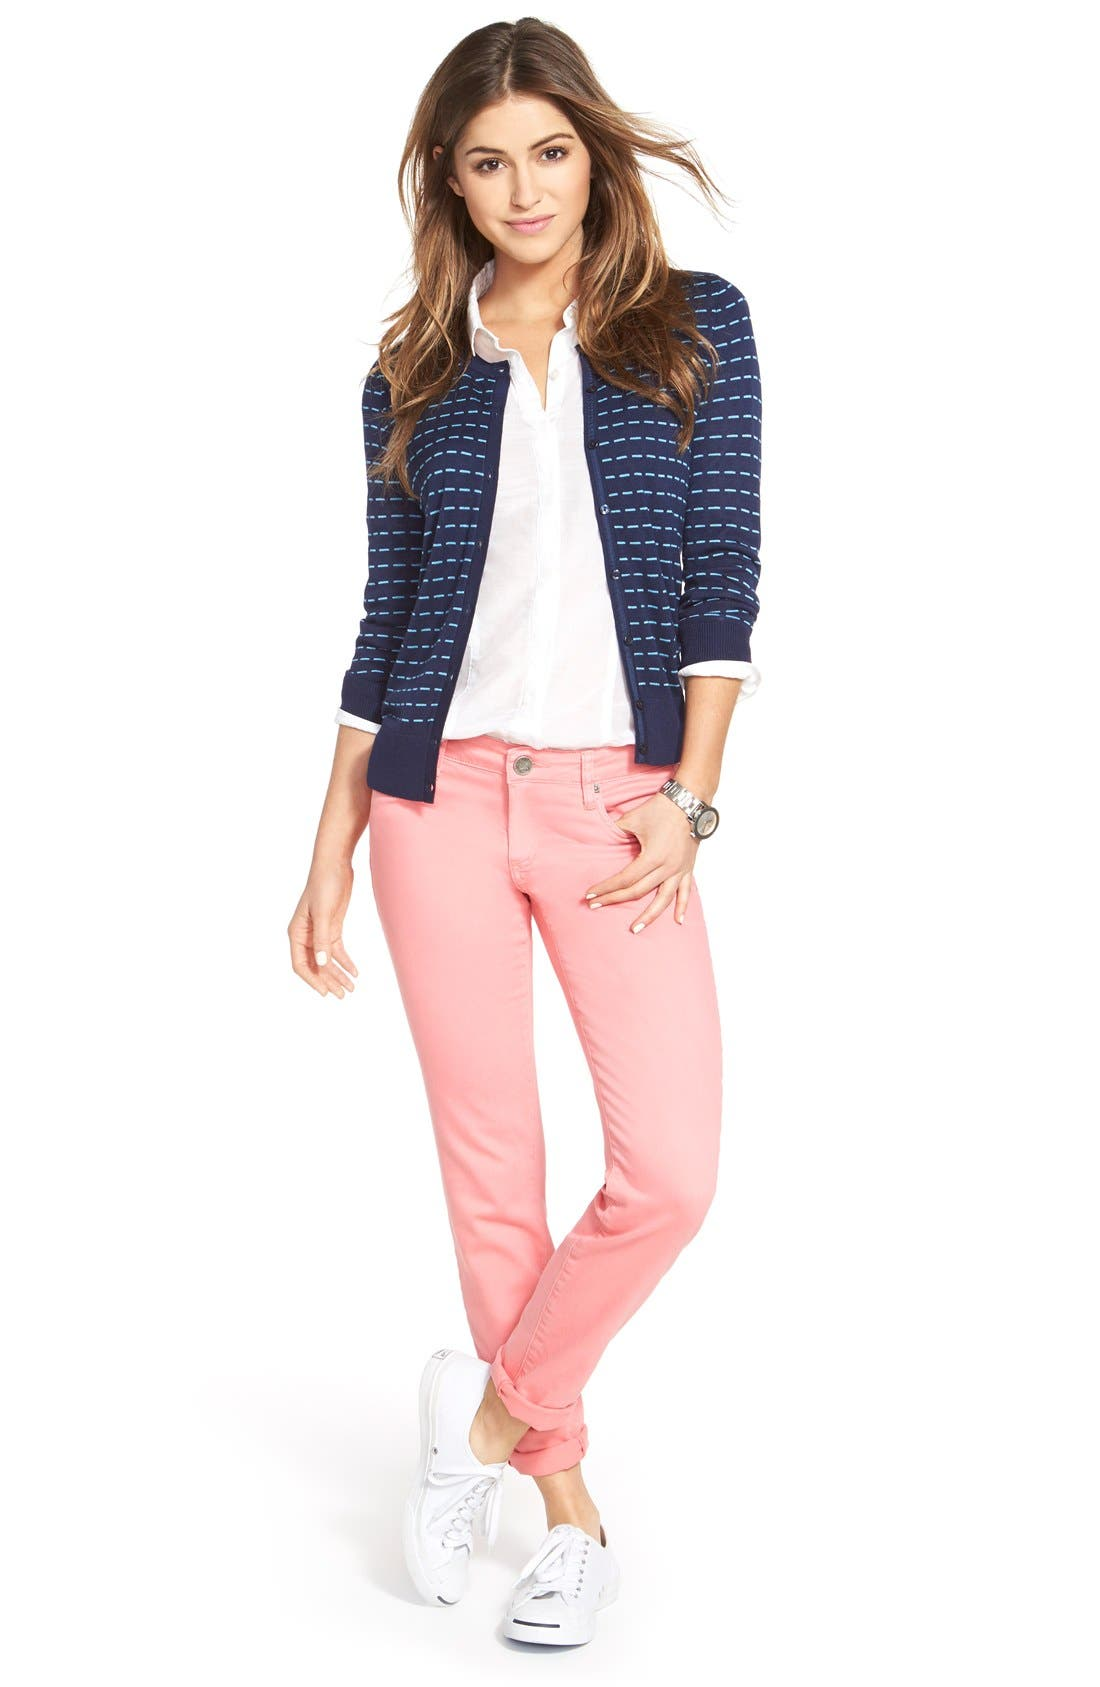 Halogen® Cardigan & KUT from the Kloth Pants